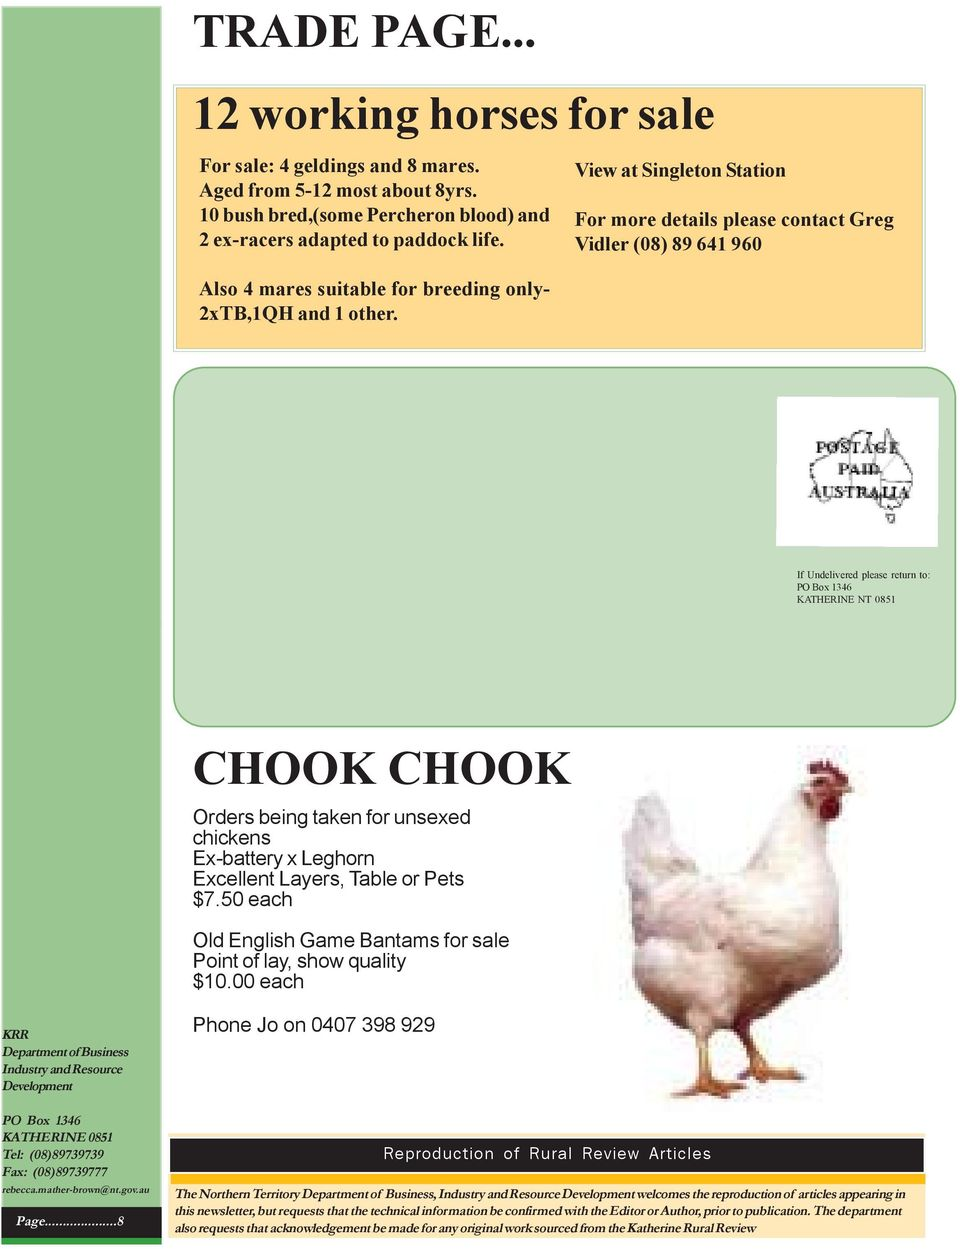 If Undelivered please return to: PO Box 1346 KATHERINE NT 0851 CHOOK CHOOK Orders being taken for unsexed chickens Ex-battery x Leghorn Excellent Layers, Table or Pets $7.